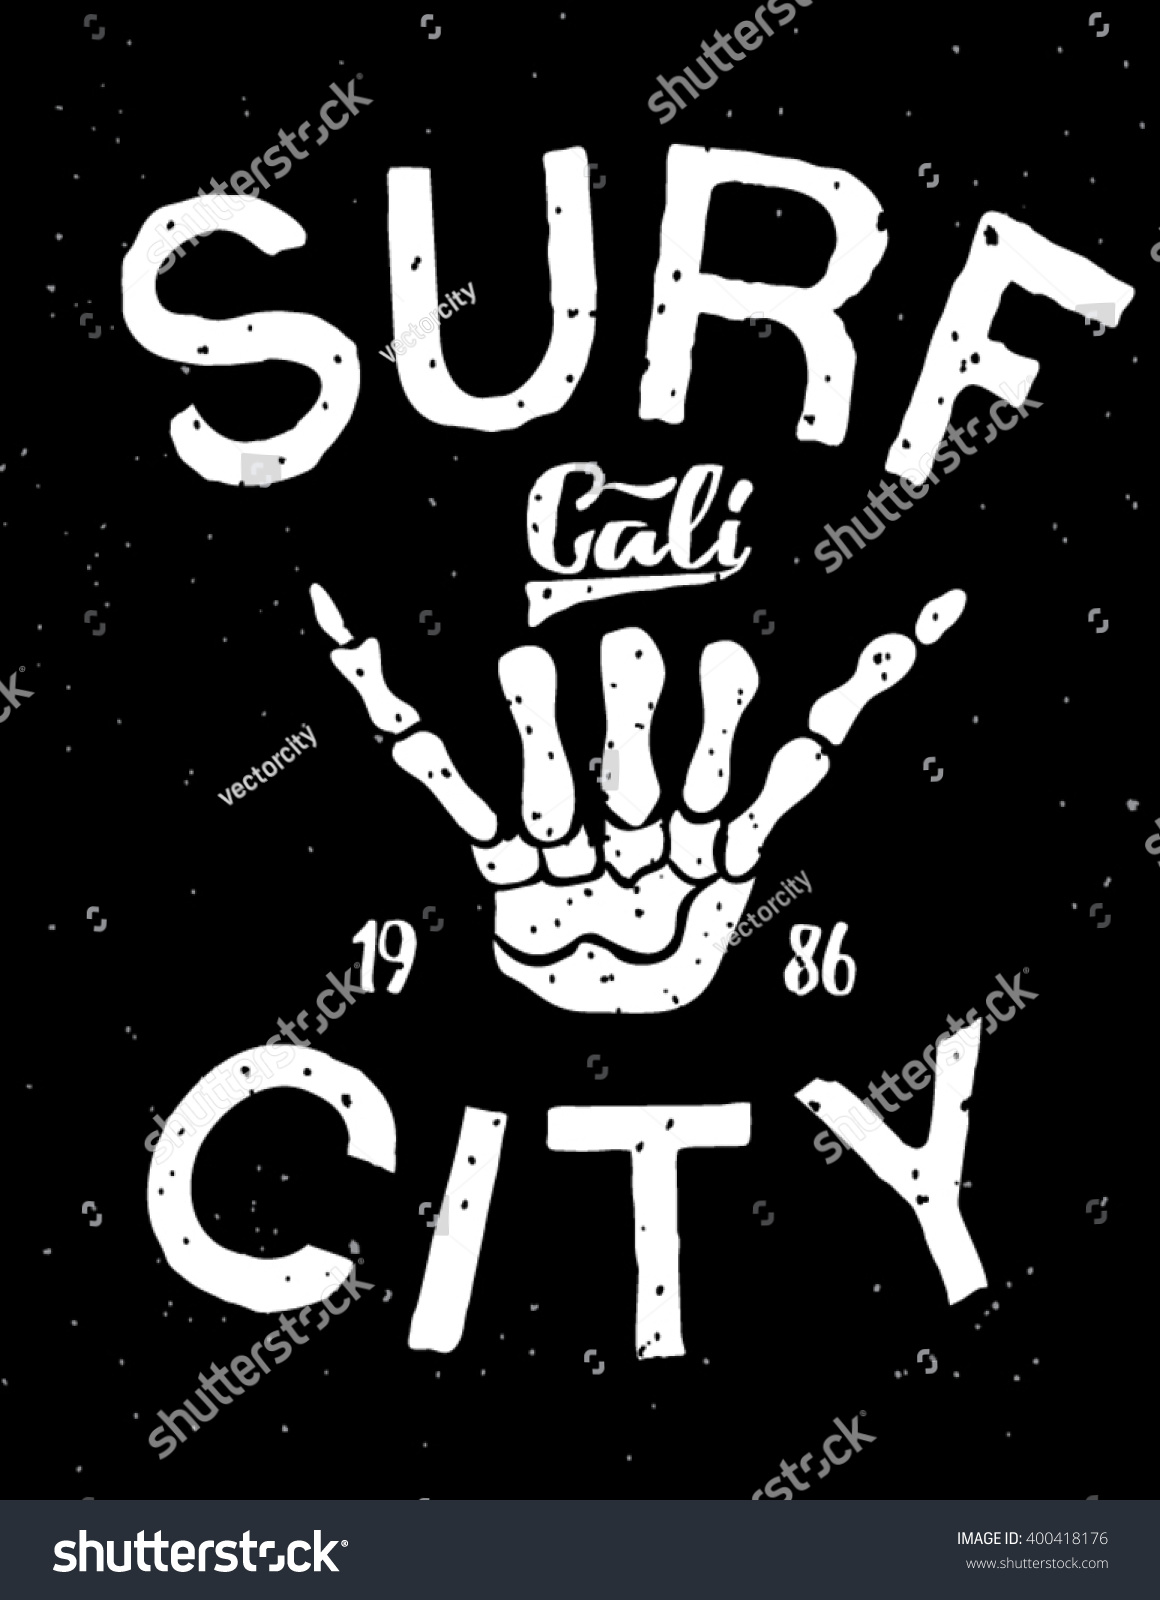 Surf Surfing artwork Vintage surf design Original tee surf print